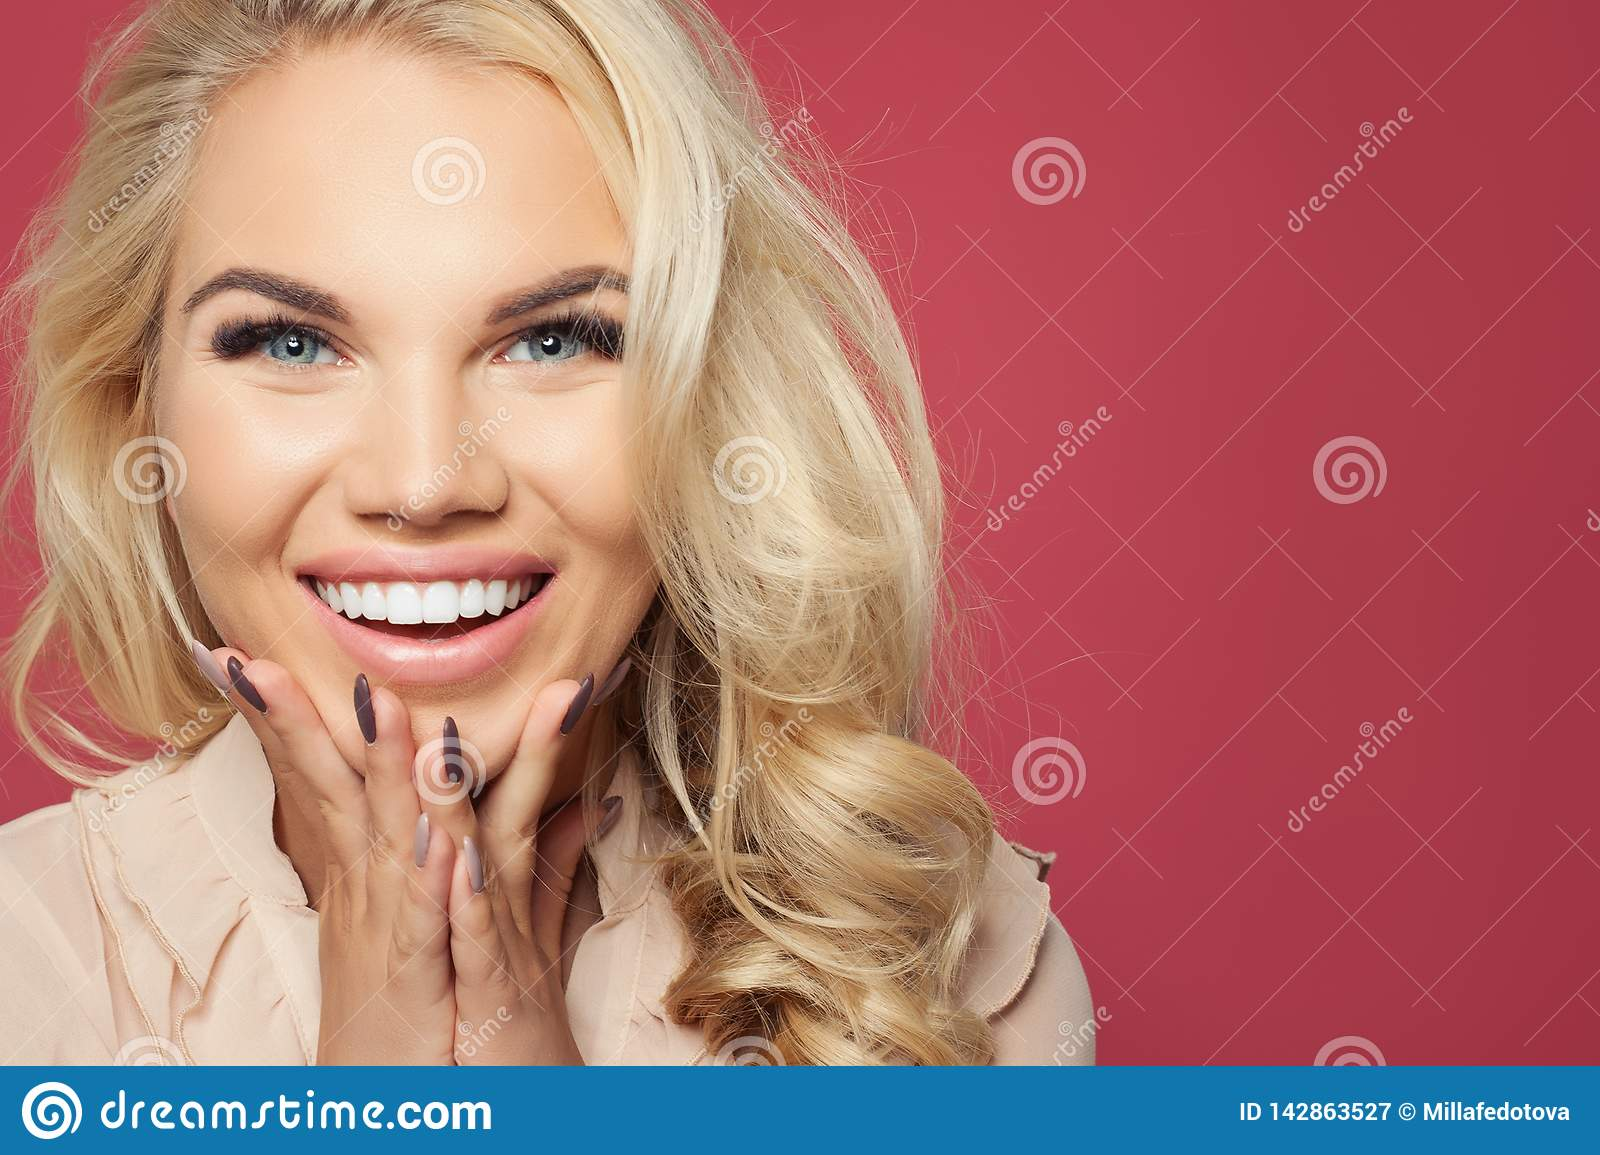 Happy woman face closeup portrait. Laughing girl on pink background, pretty face